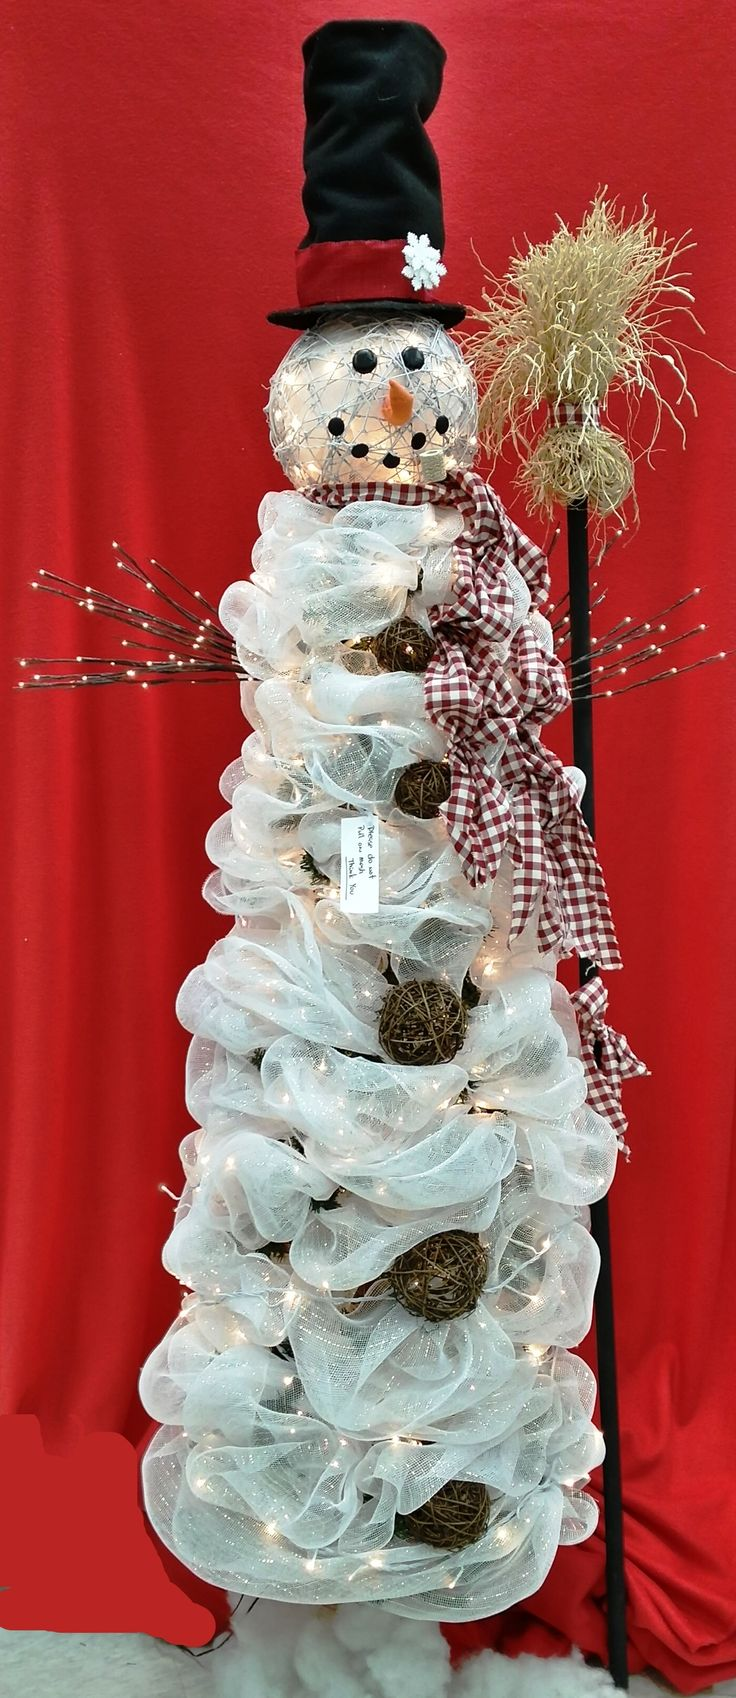 17 best images about wreath ideas i need to try on for Snowman made out of burlap